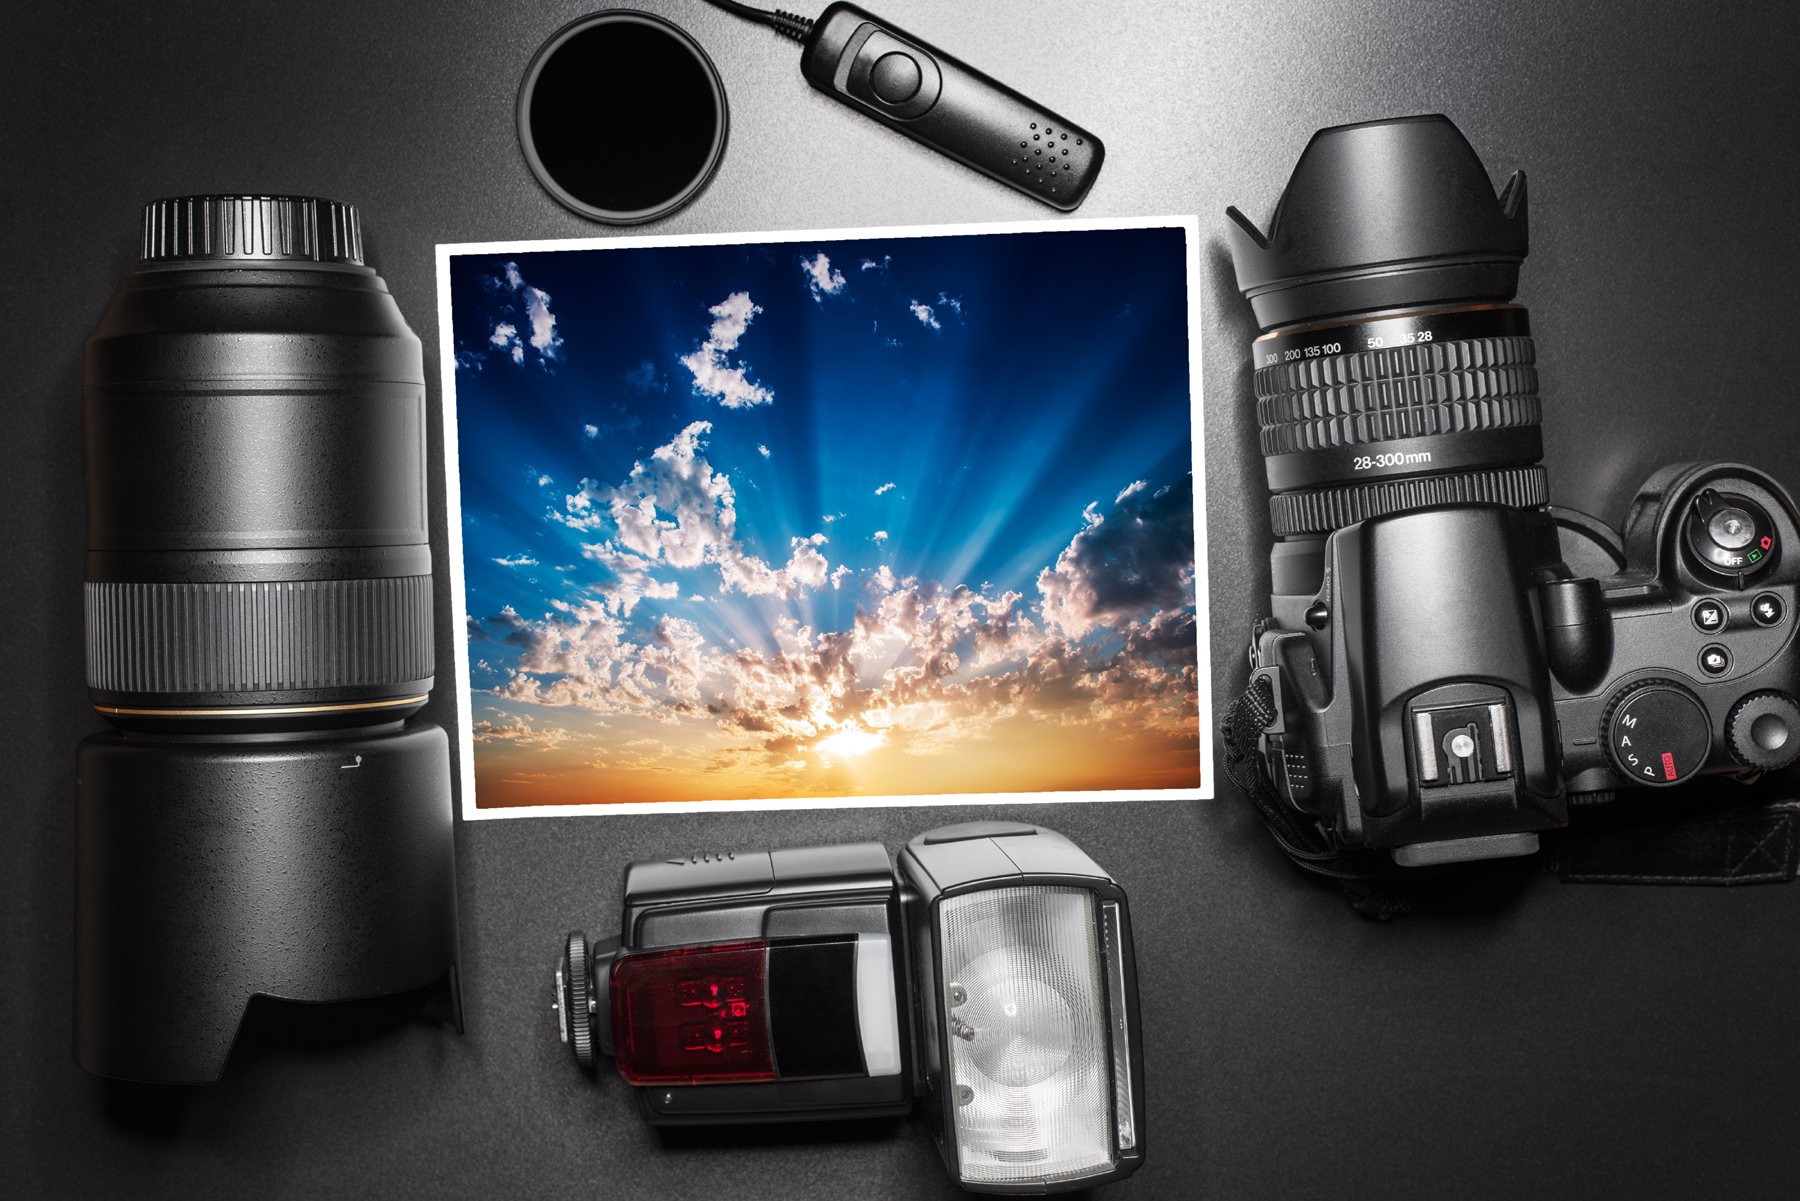 Desktop photos and photographic equipment 52353